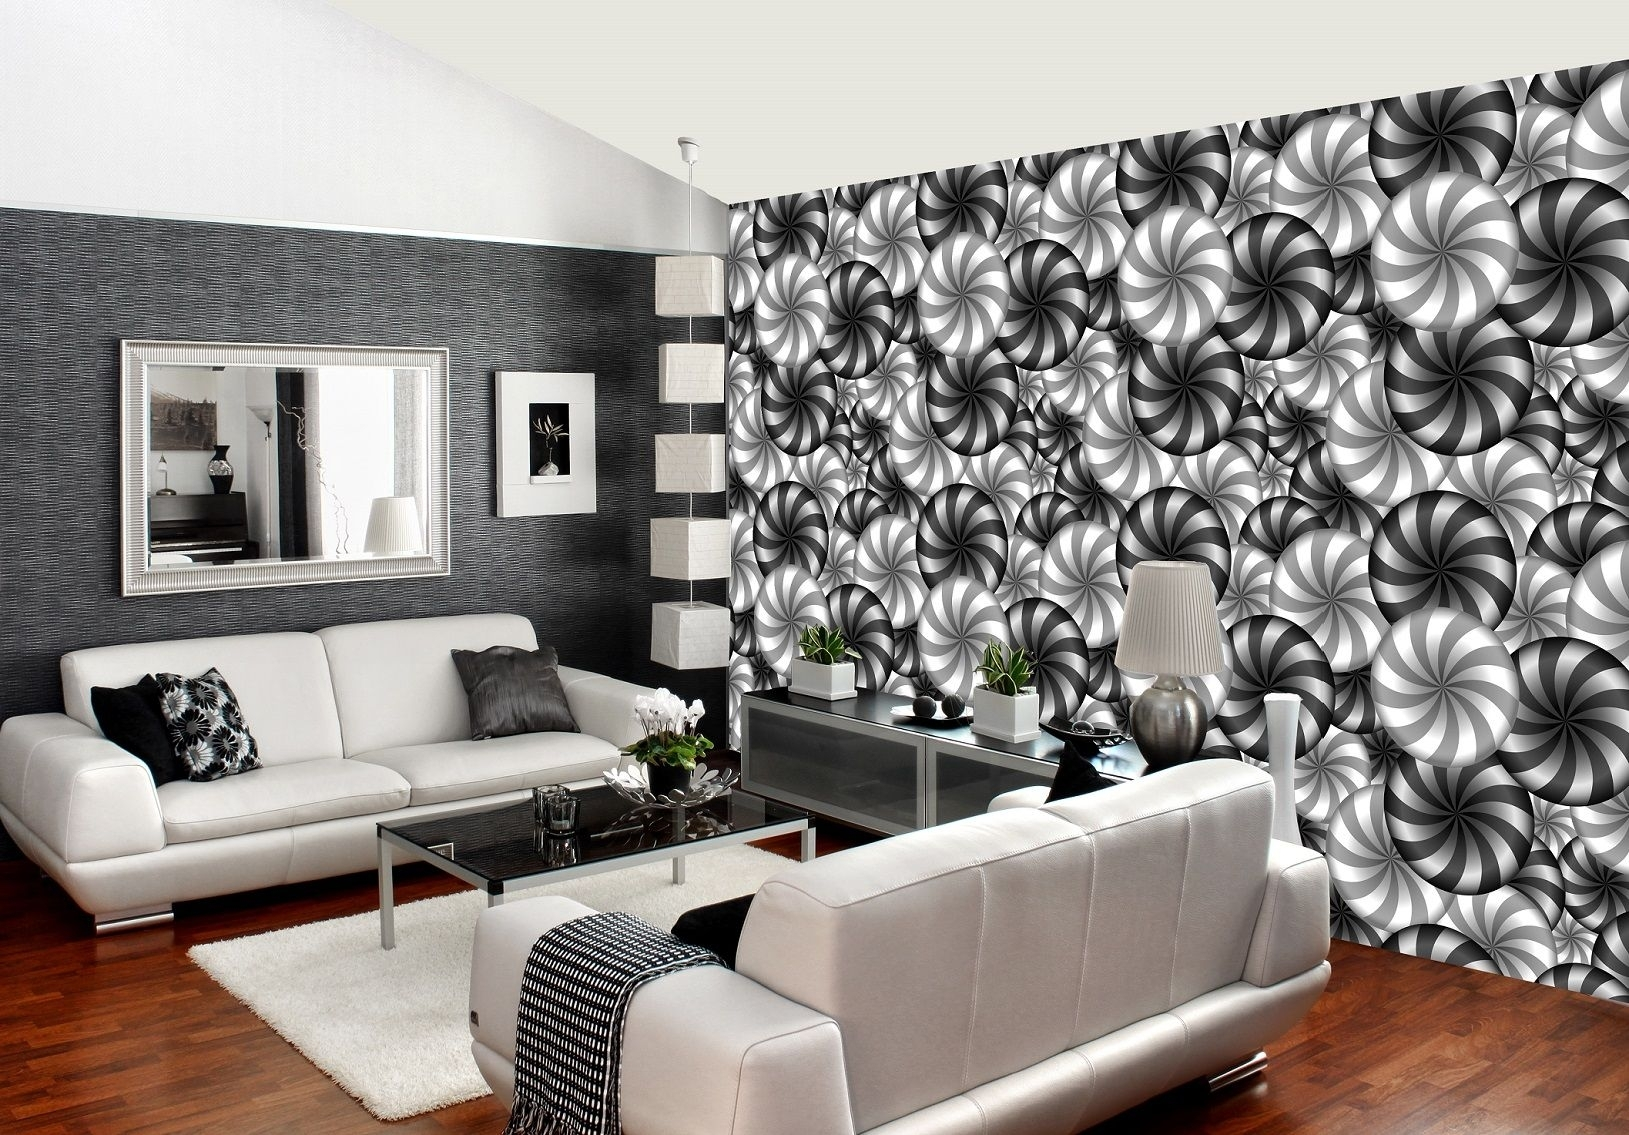 3D Illusion Optical B&w Abstract Art Decor Wall Mural Photo Inside 2017 Abstract Art Wall Murals (View 2 of 20)